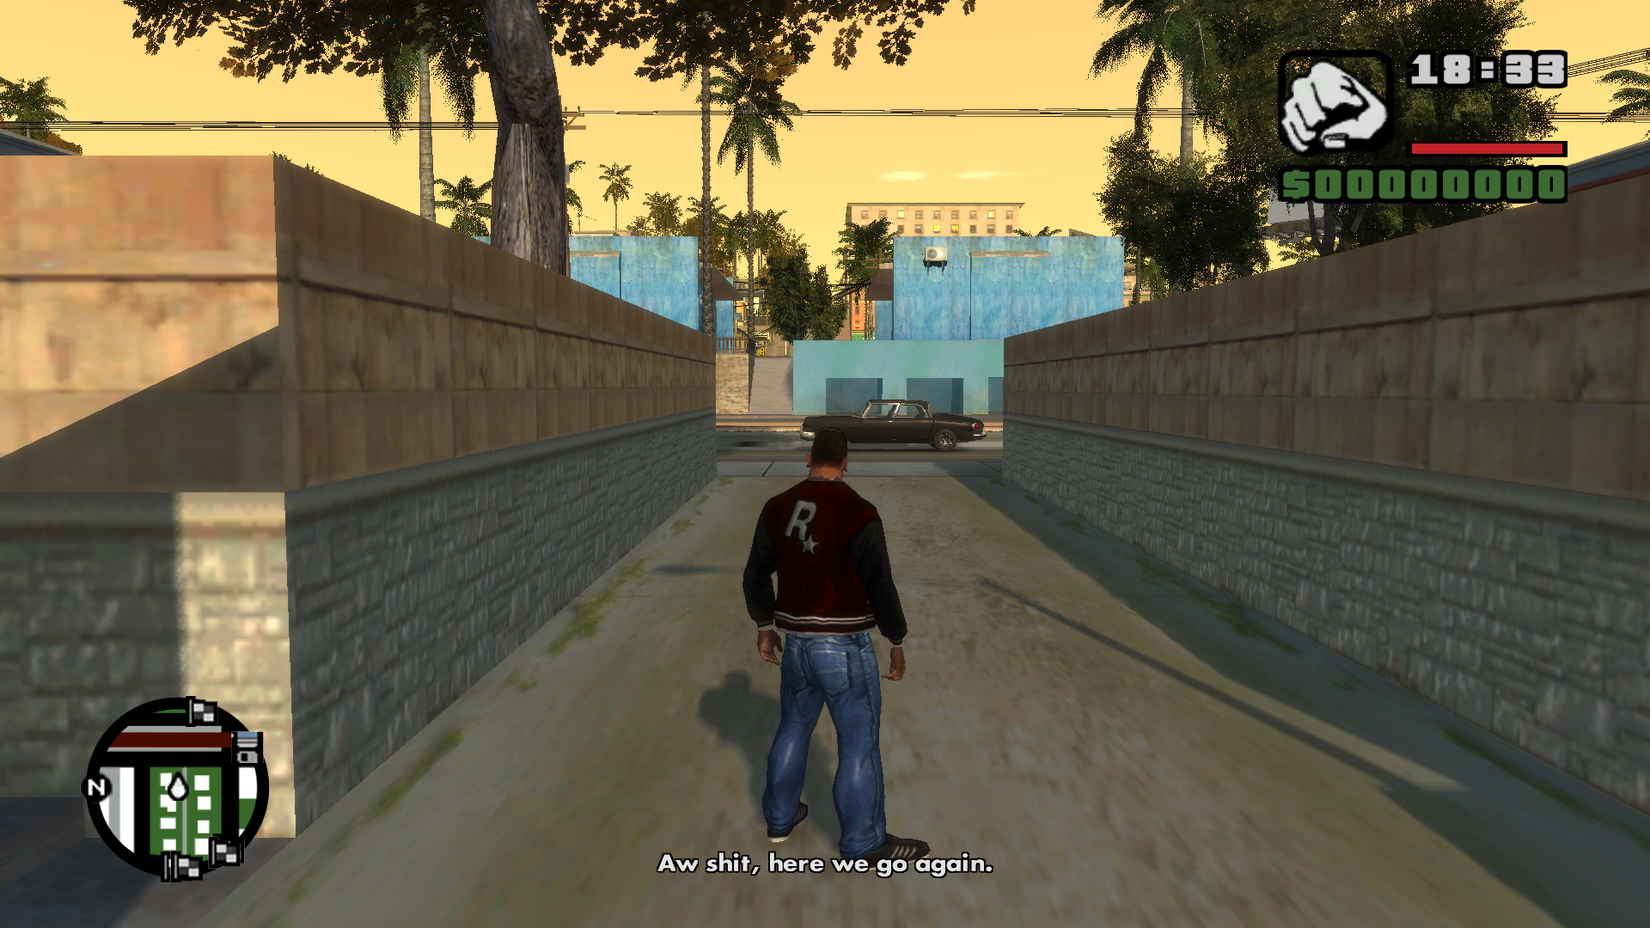 Grand theft auto iv: san andreas simhq forums.